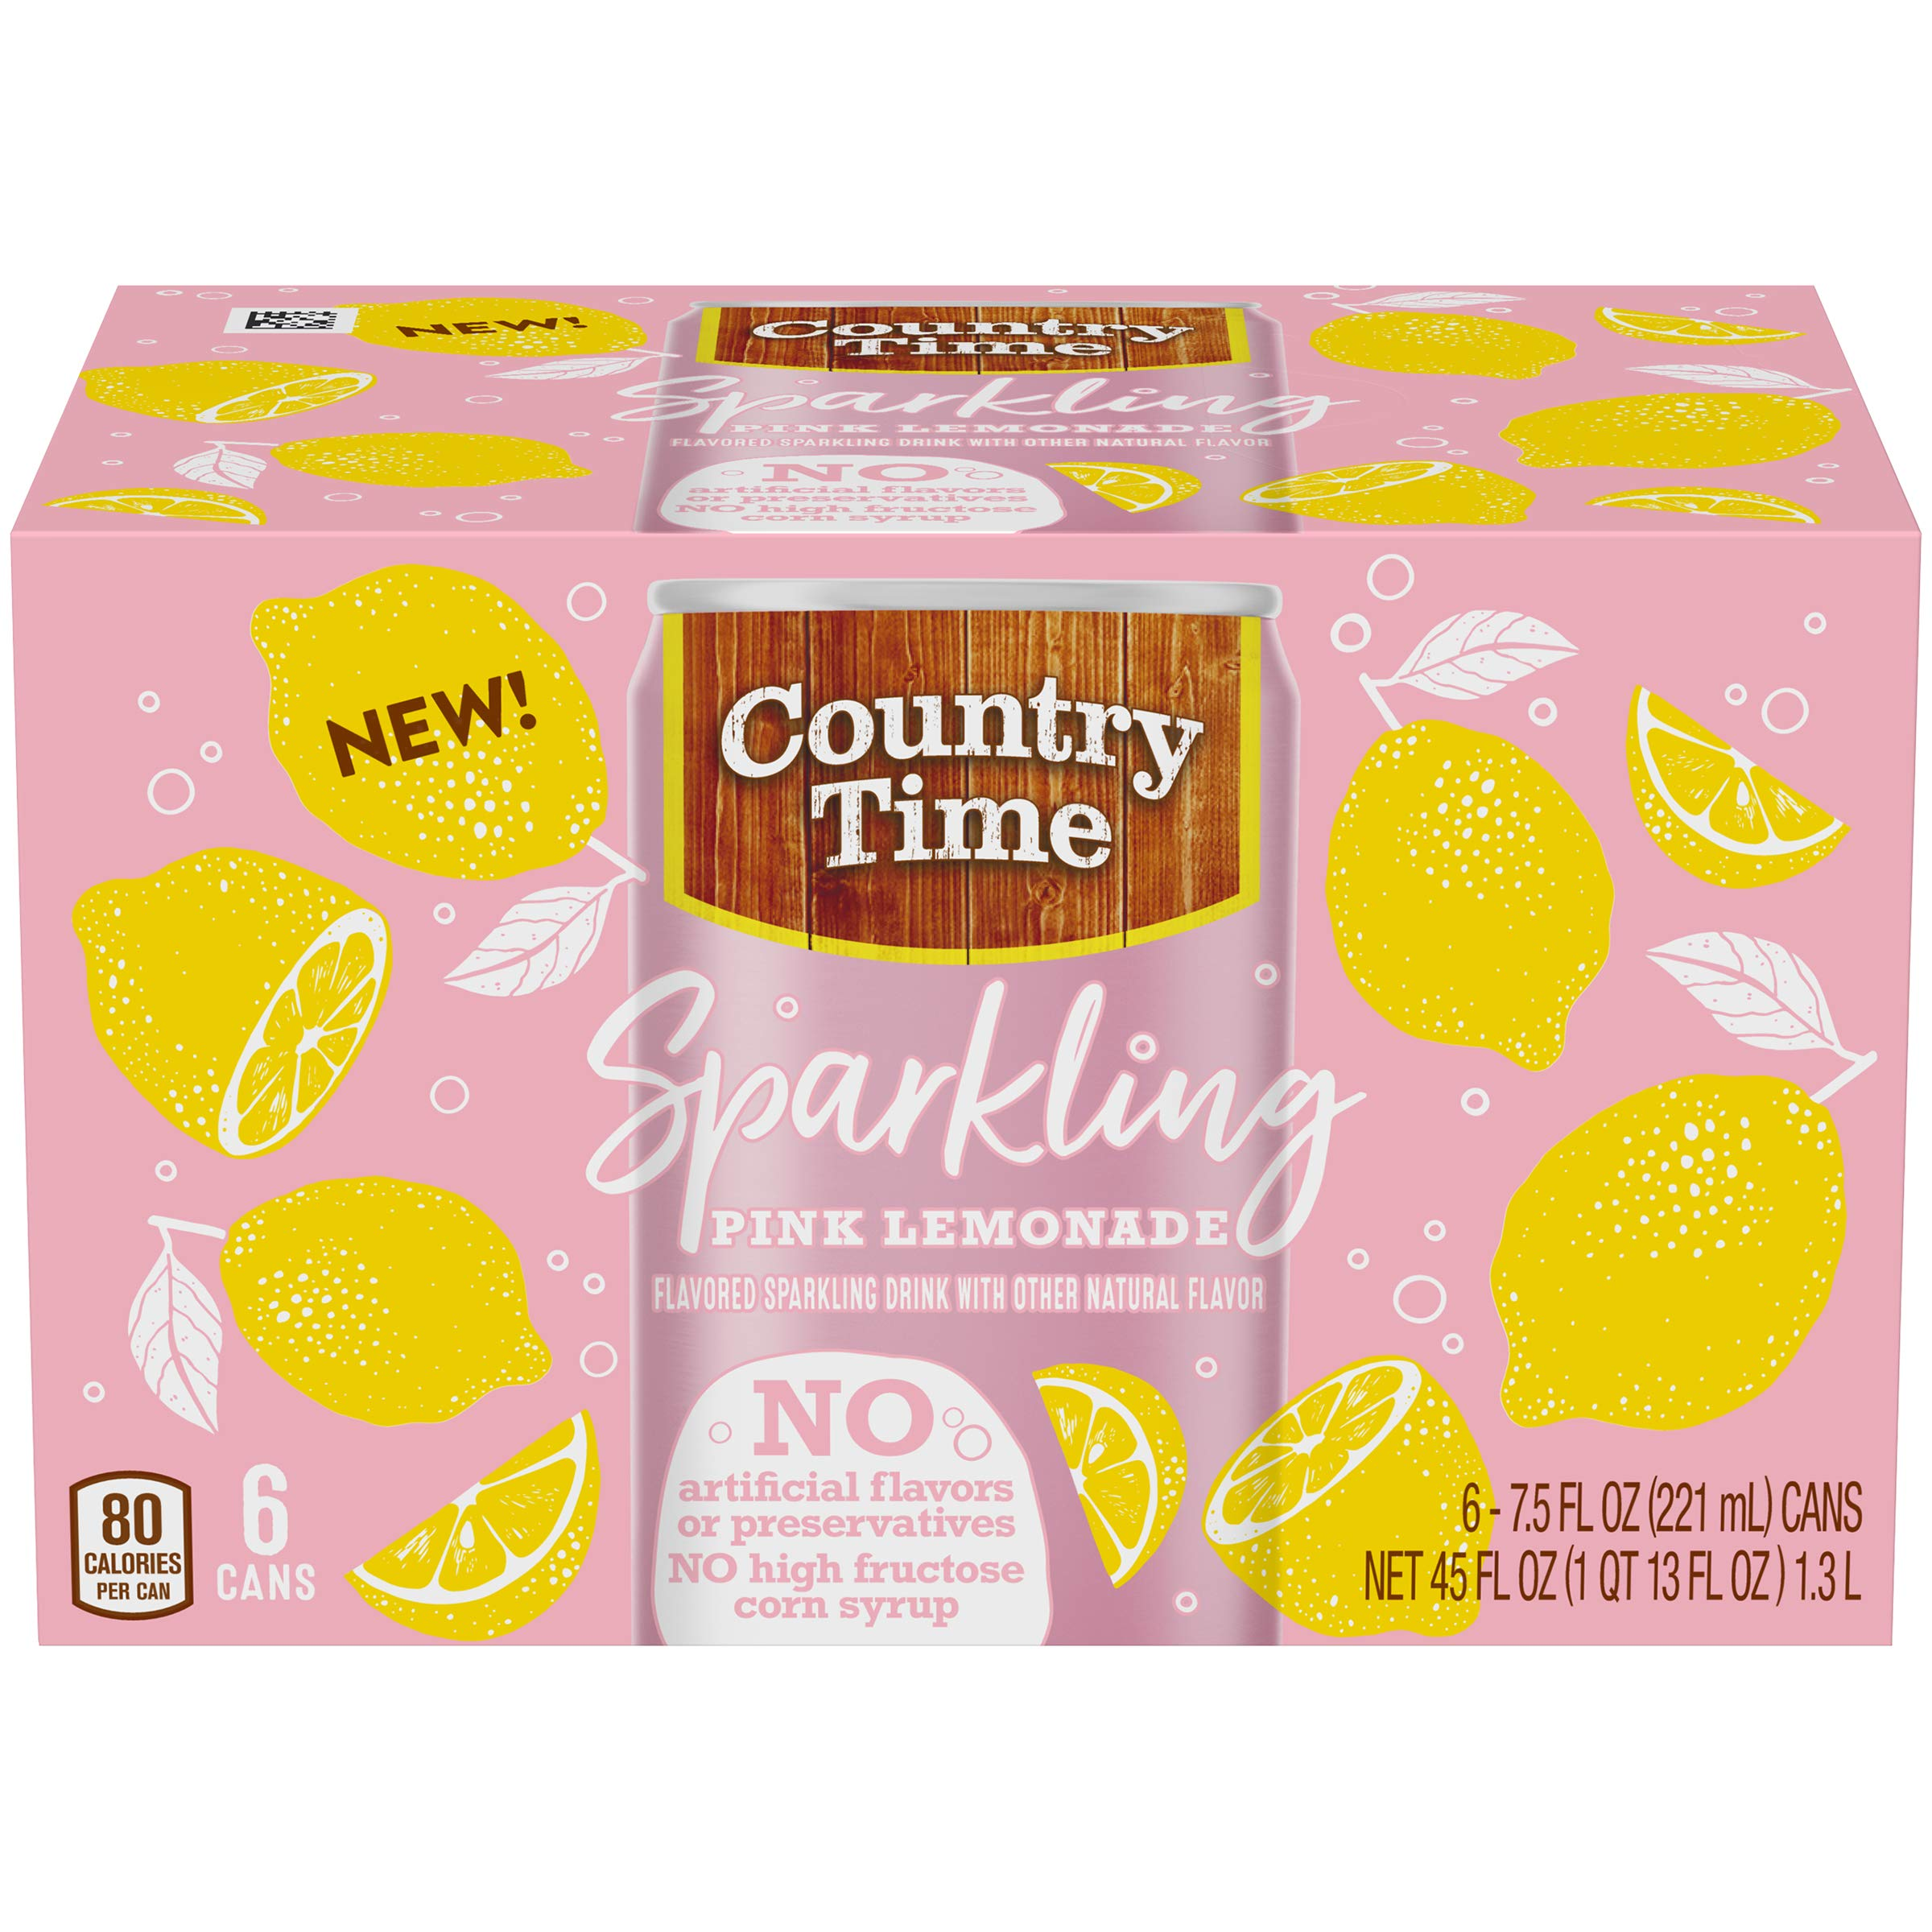 Country Time Sparkling Pink Lemonade Drink Mix (7.5 oz Cans, 6 Count) by Country Time